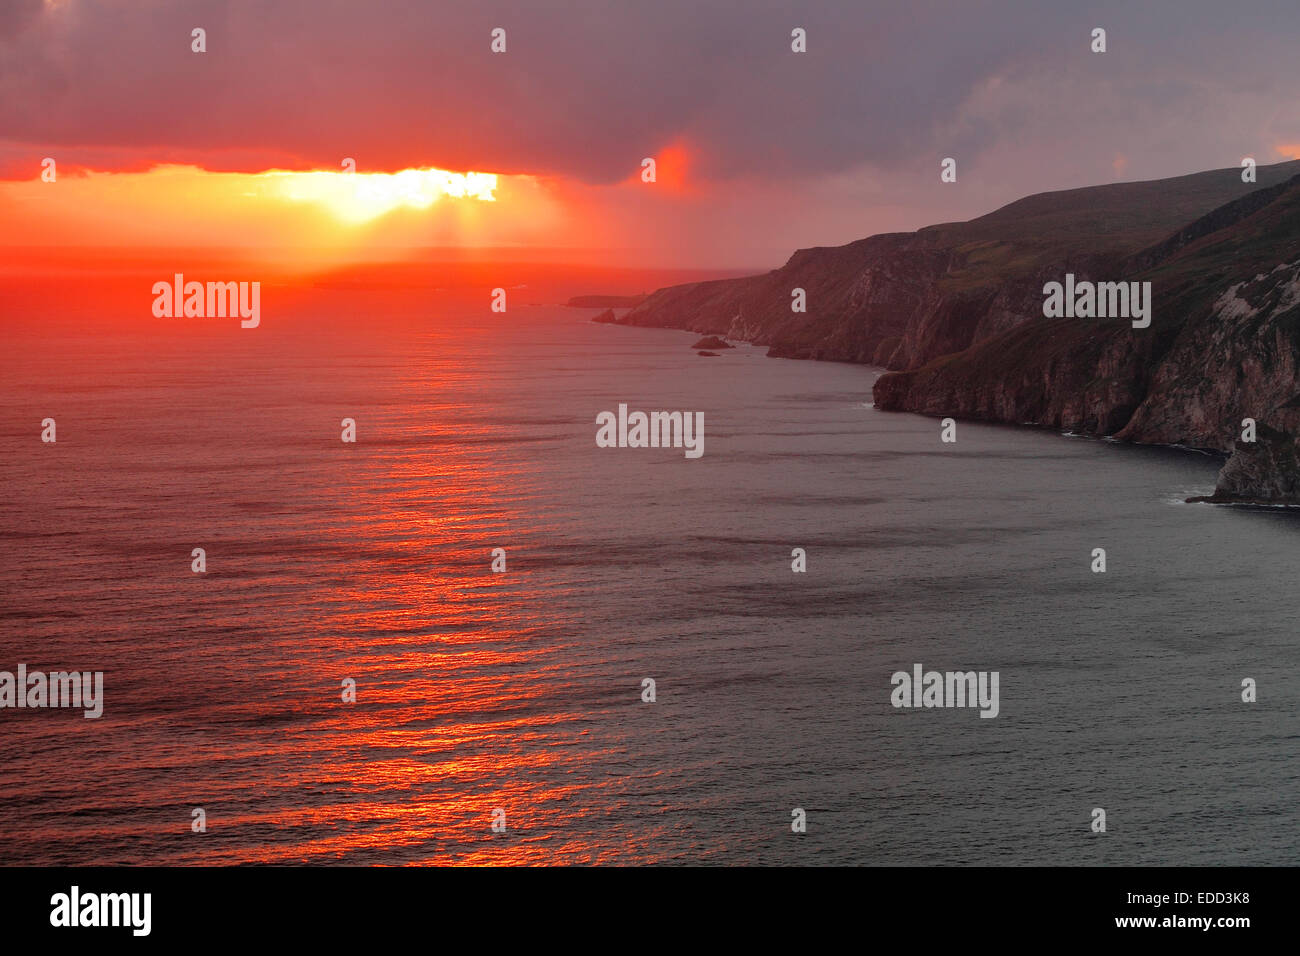 sunset at Slieve League (Irish: Sliabh Liag) - At 601 metres (1,972 ft), the highest sea cliffs in Ireland, Donegal - Stock Image